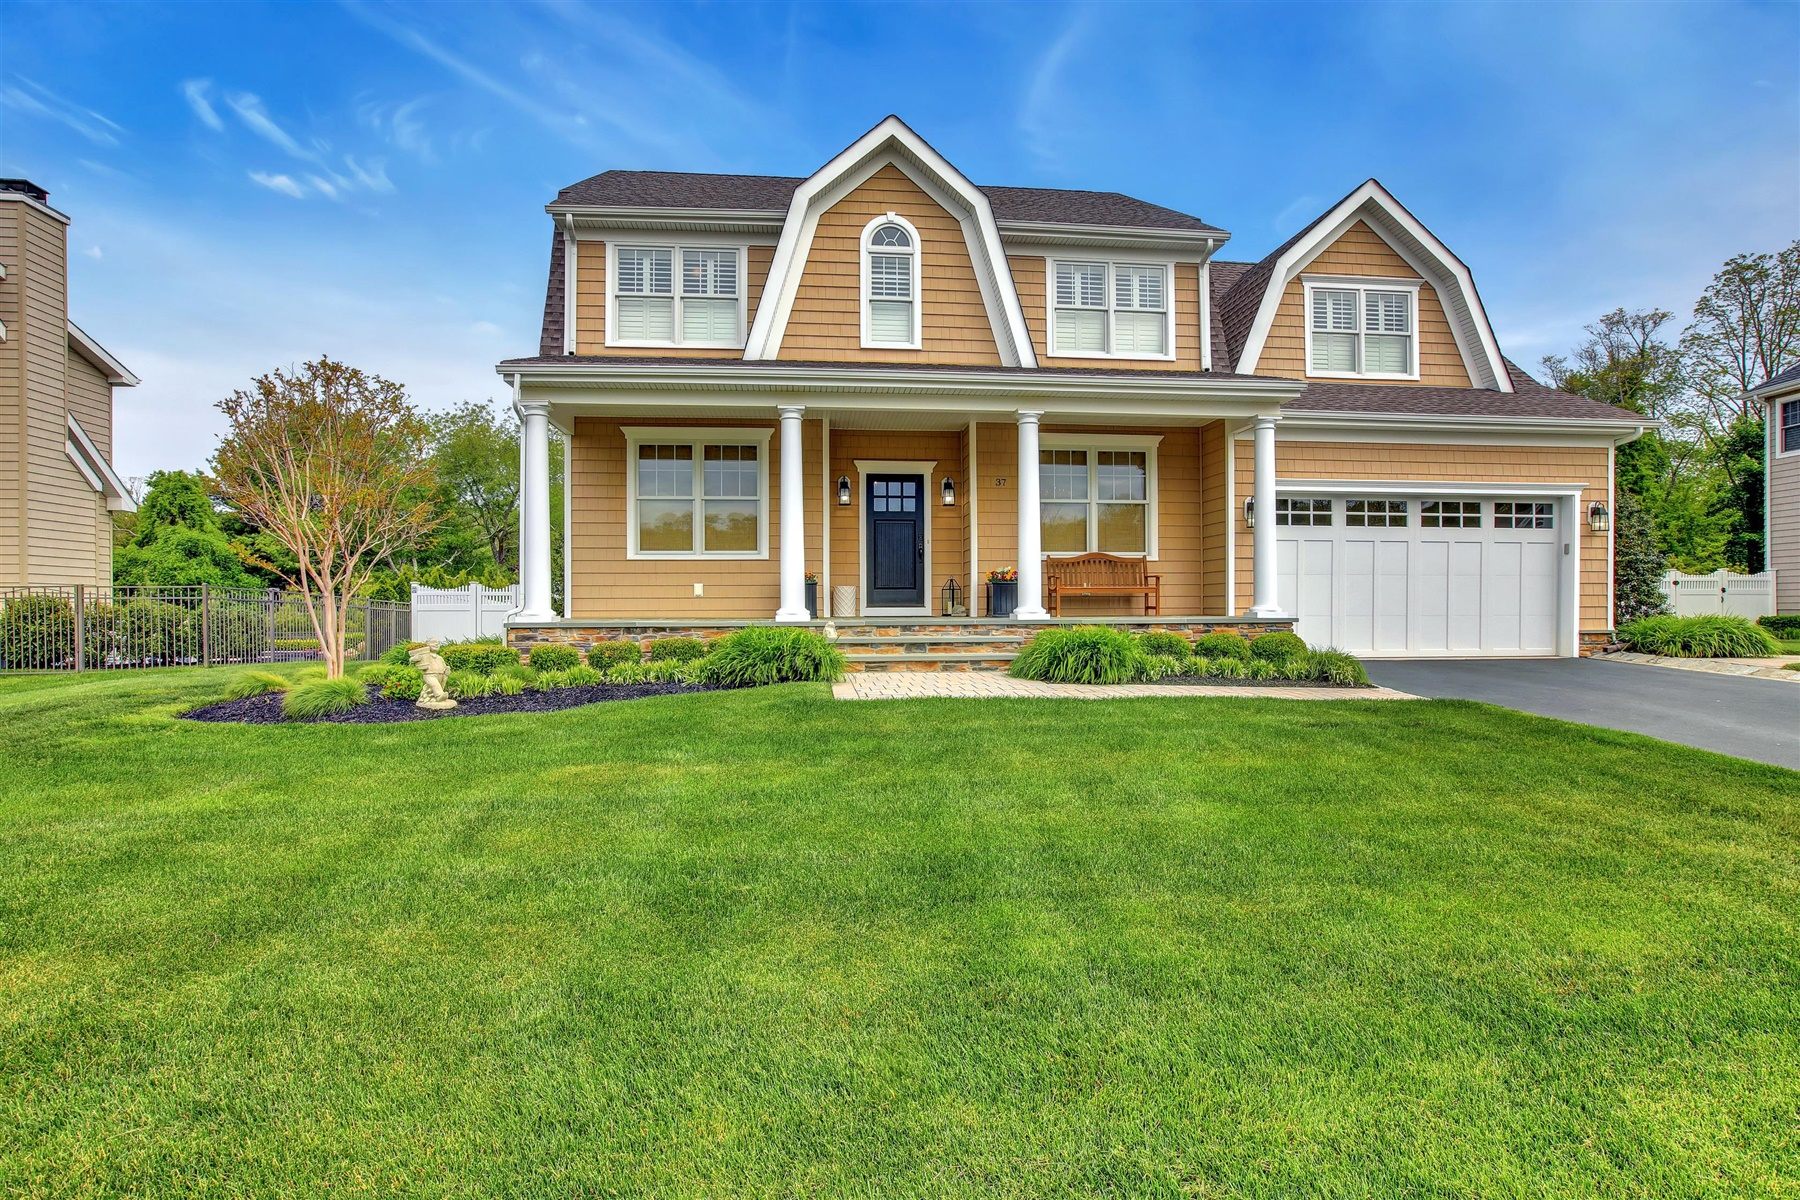 Single Family Homes for Sale at Deal Manor 37 Bentley Lane Ocean Township, New Jersey 07712 United States